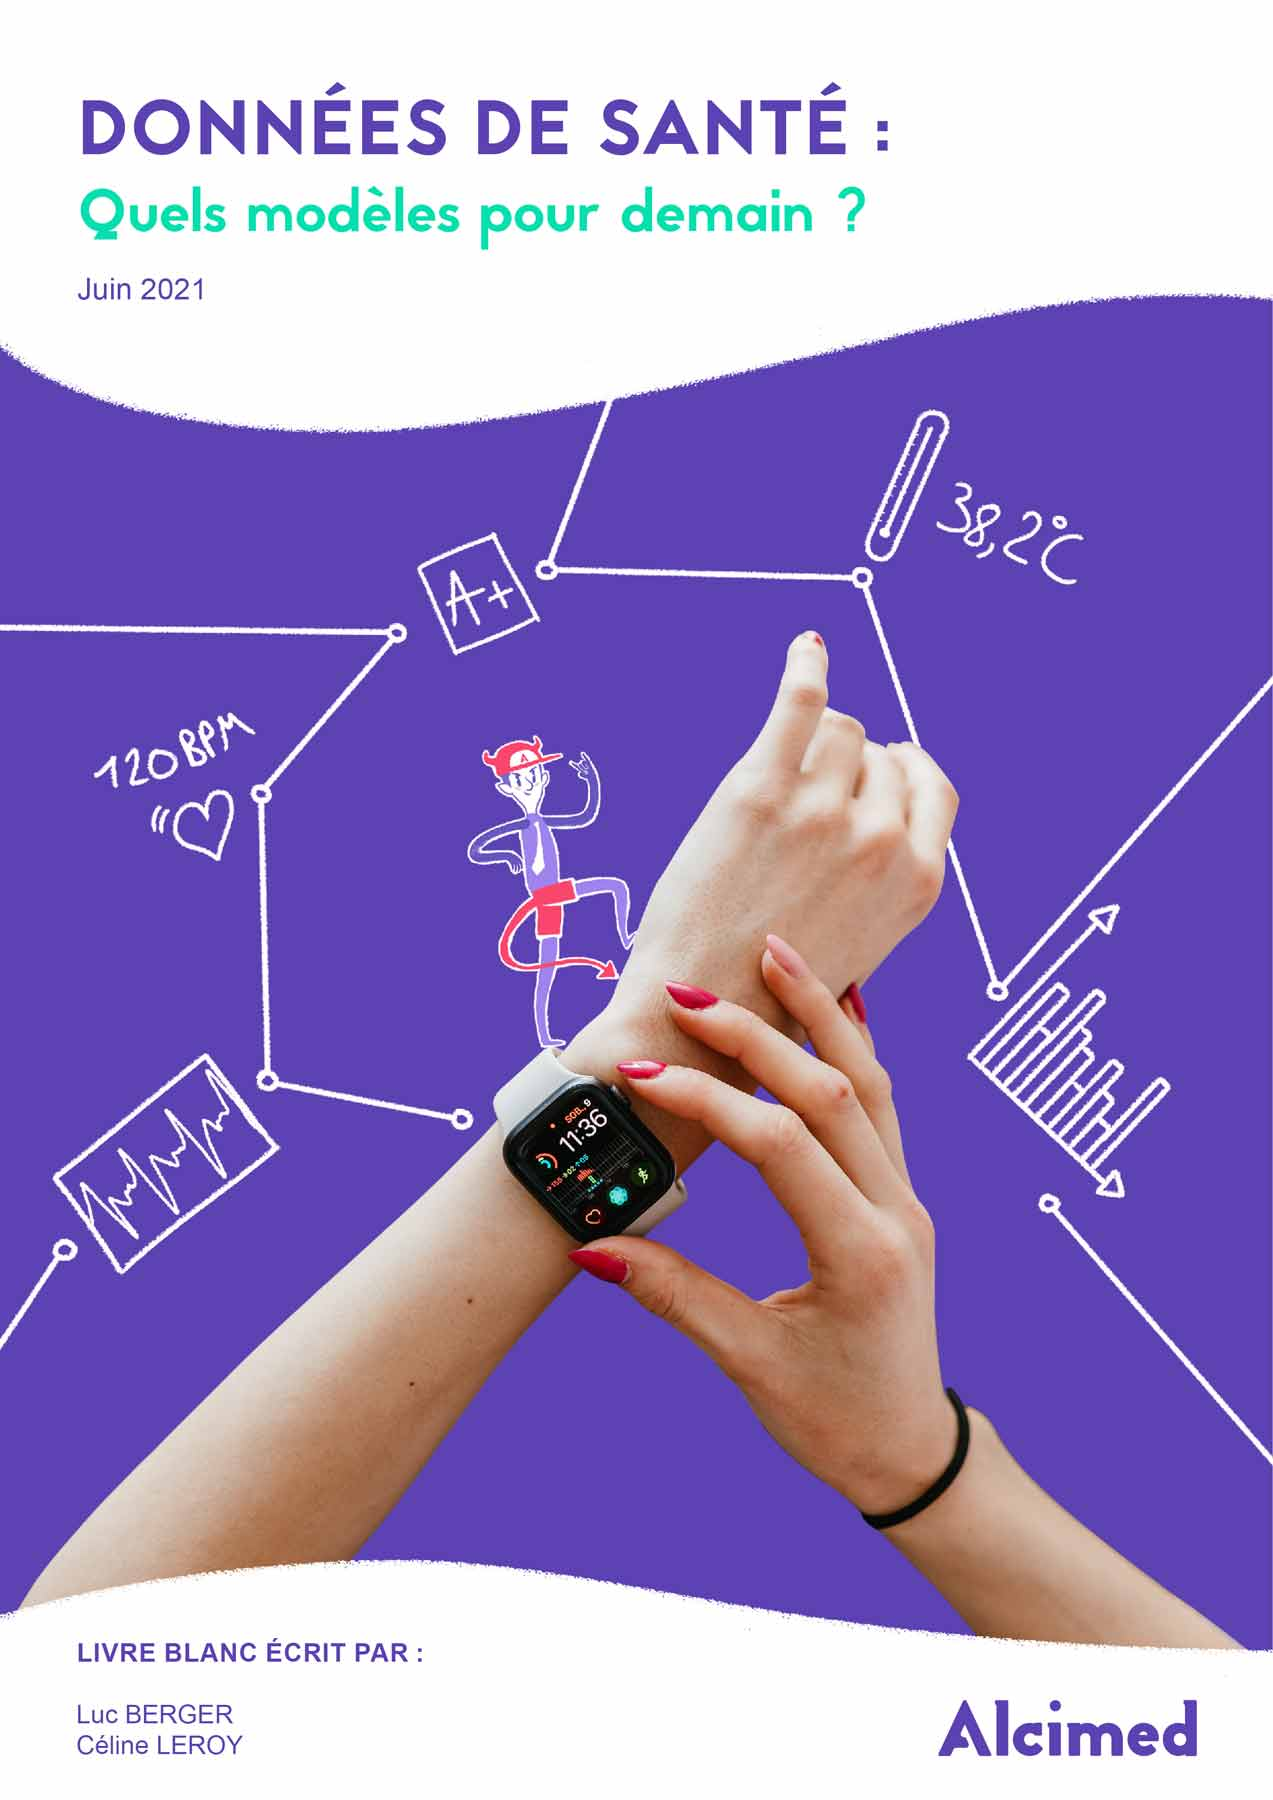 Health data: what models for tomorrow? Download our position paper.